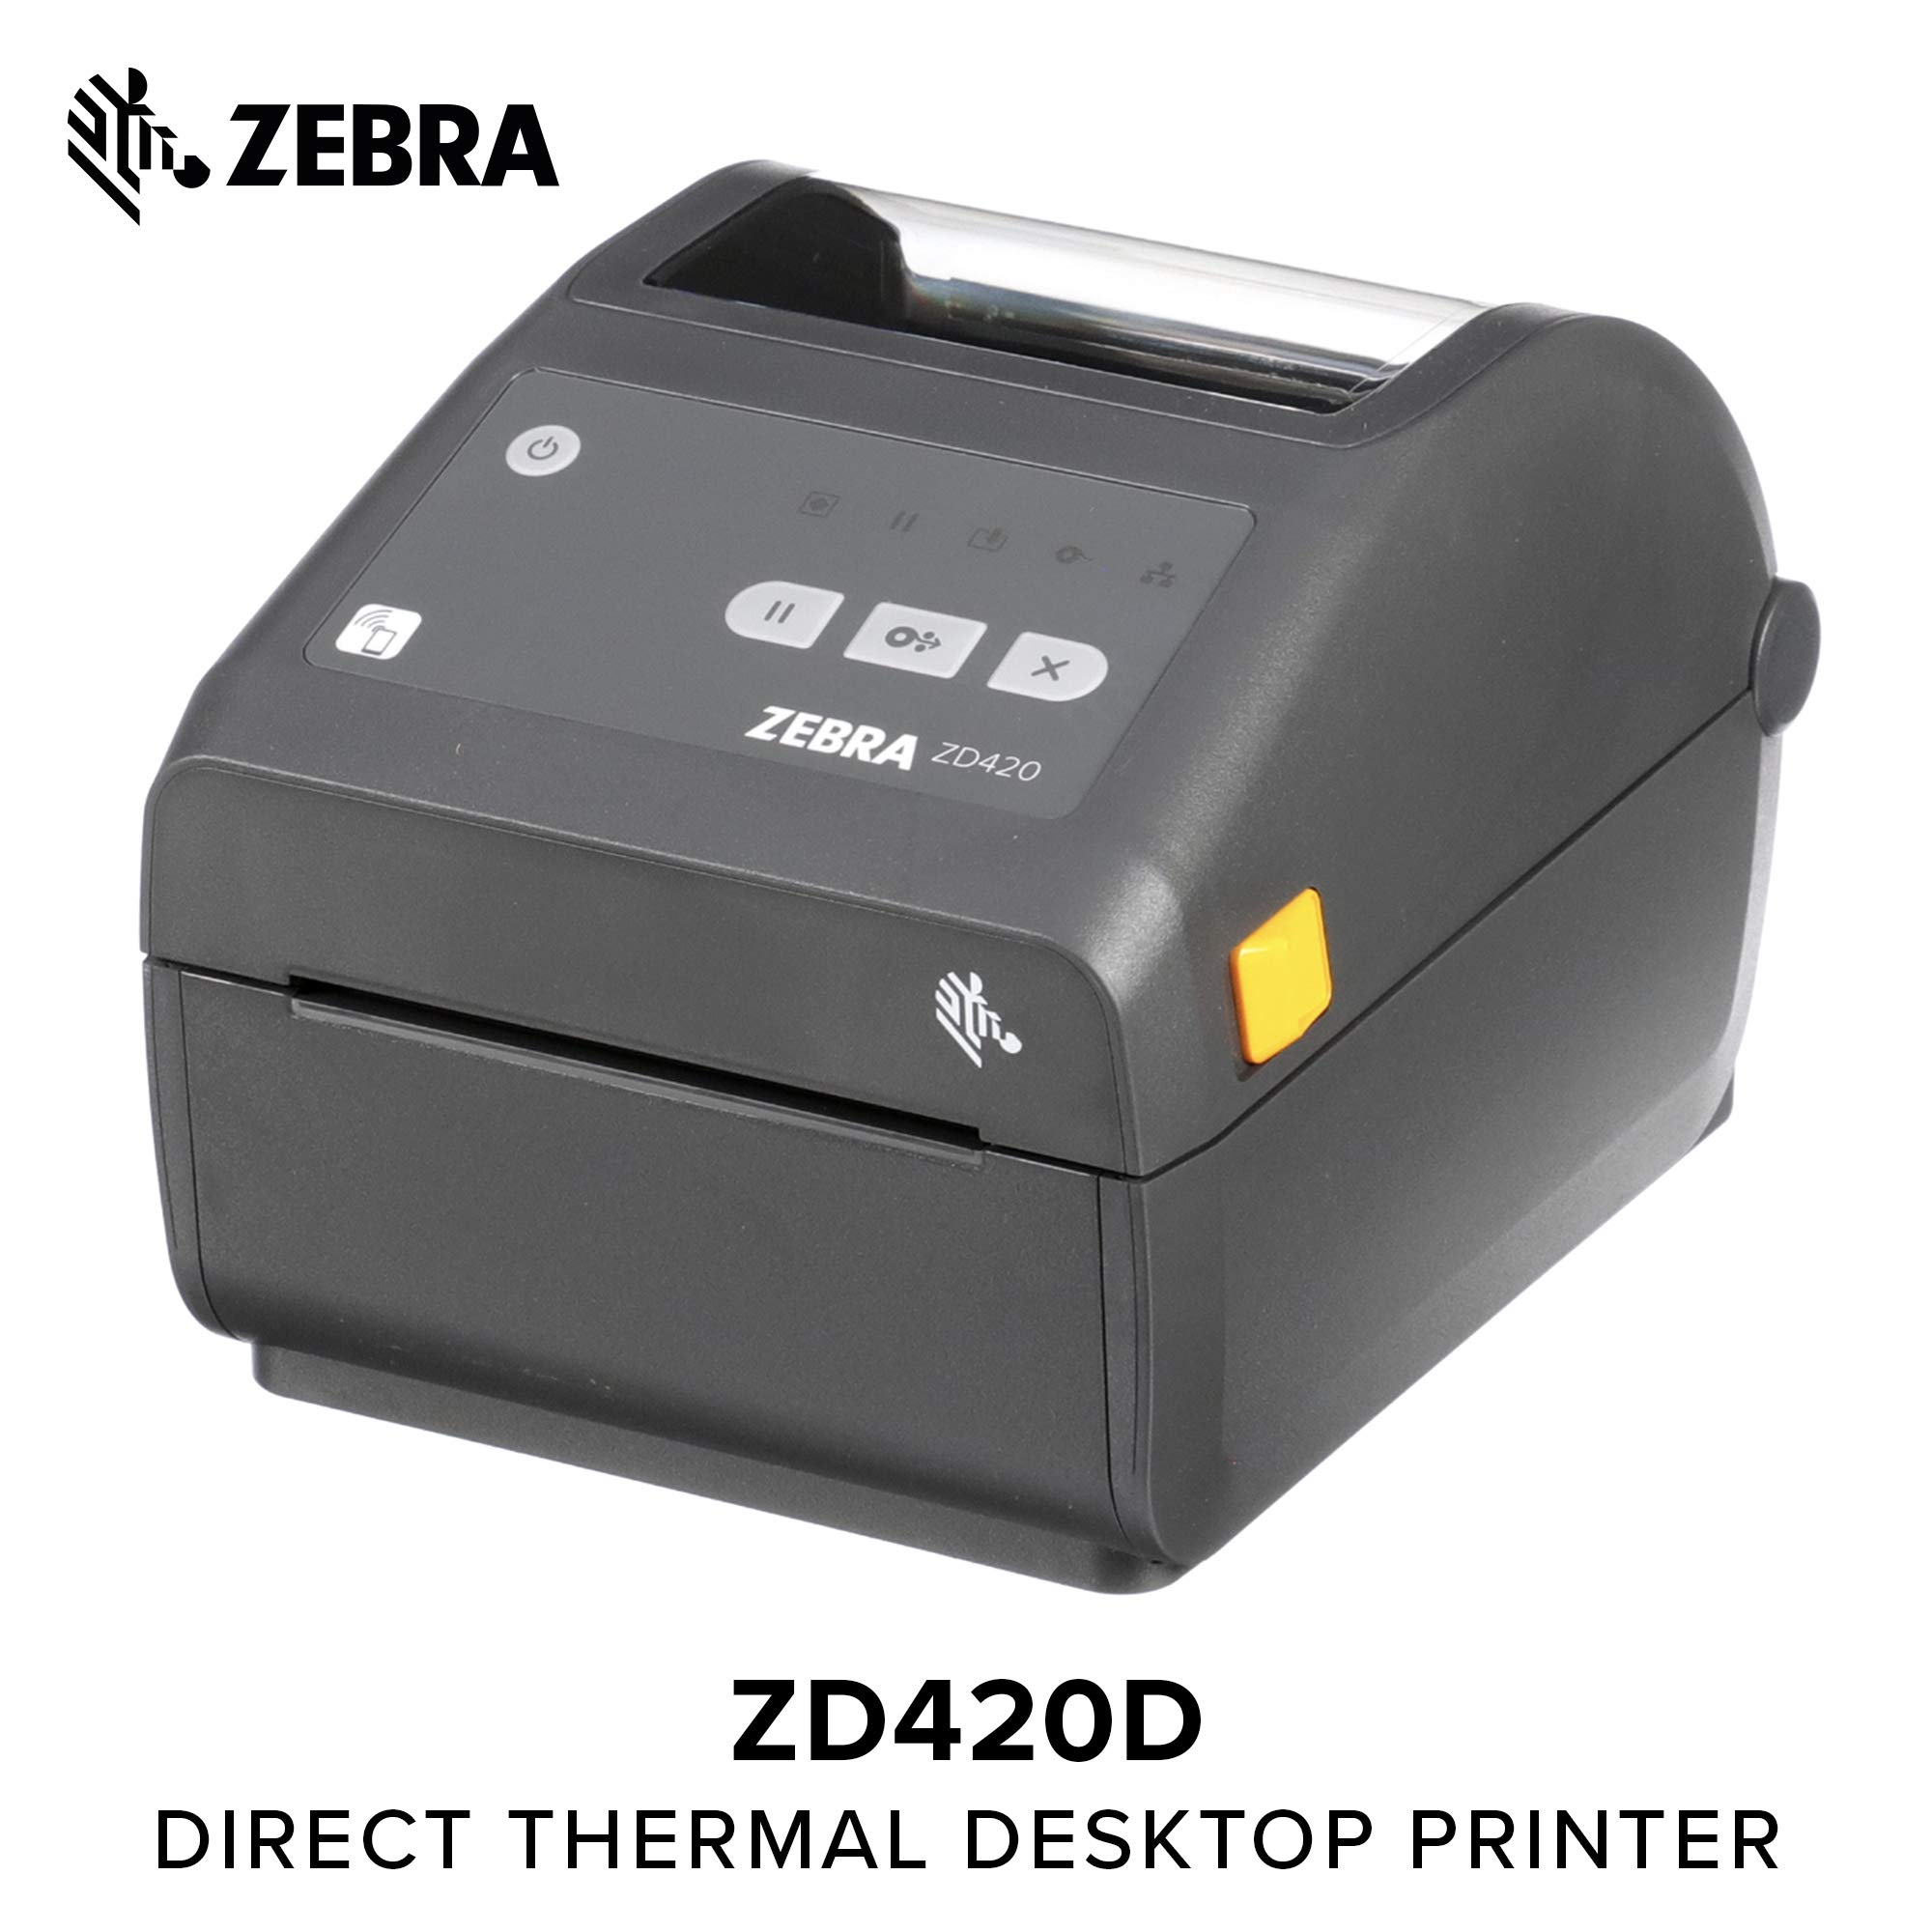 Zebra - ZD420d Direct Thermal Desktop Printer for Labels and Barcodes - Print Width 4 in - 300 dpi - Interface: Ethernet, USB - ZD42043-D01E00EZ